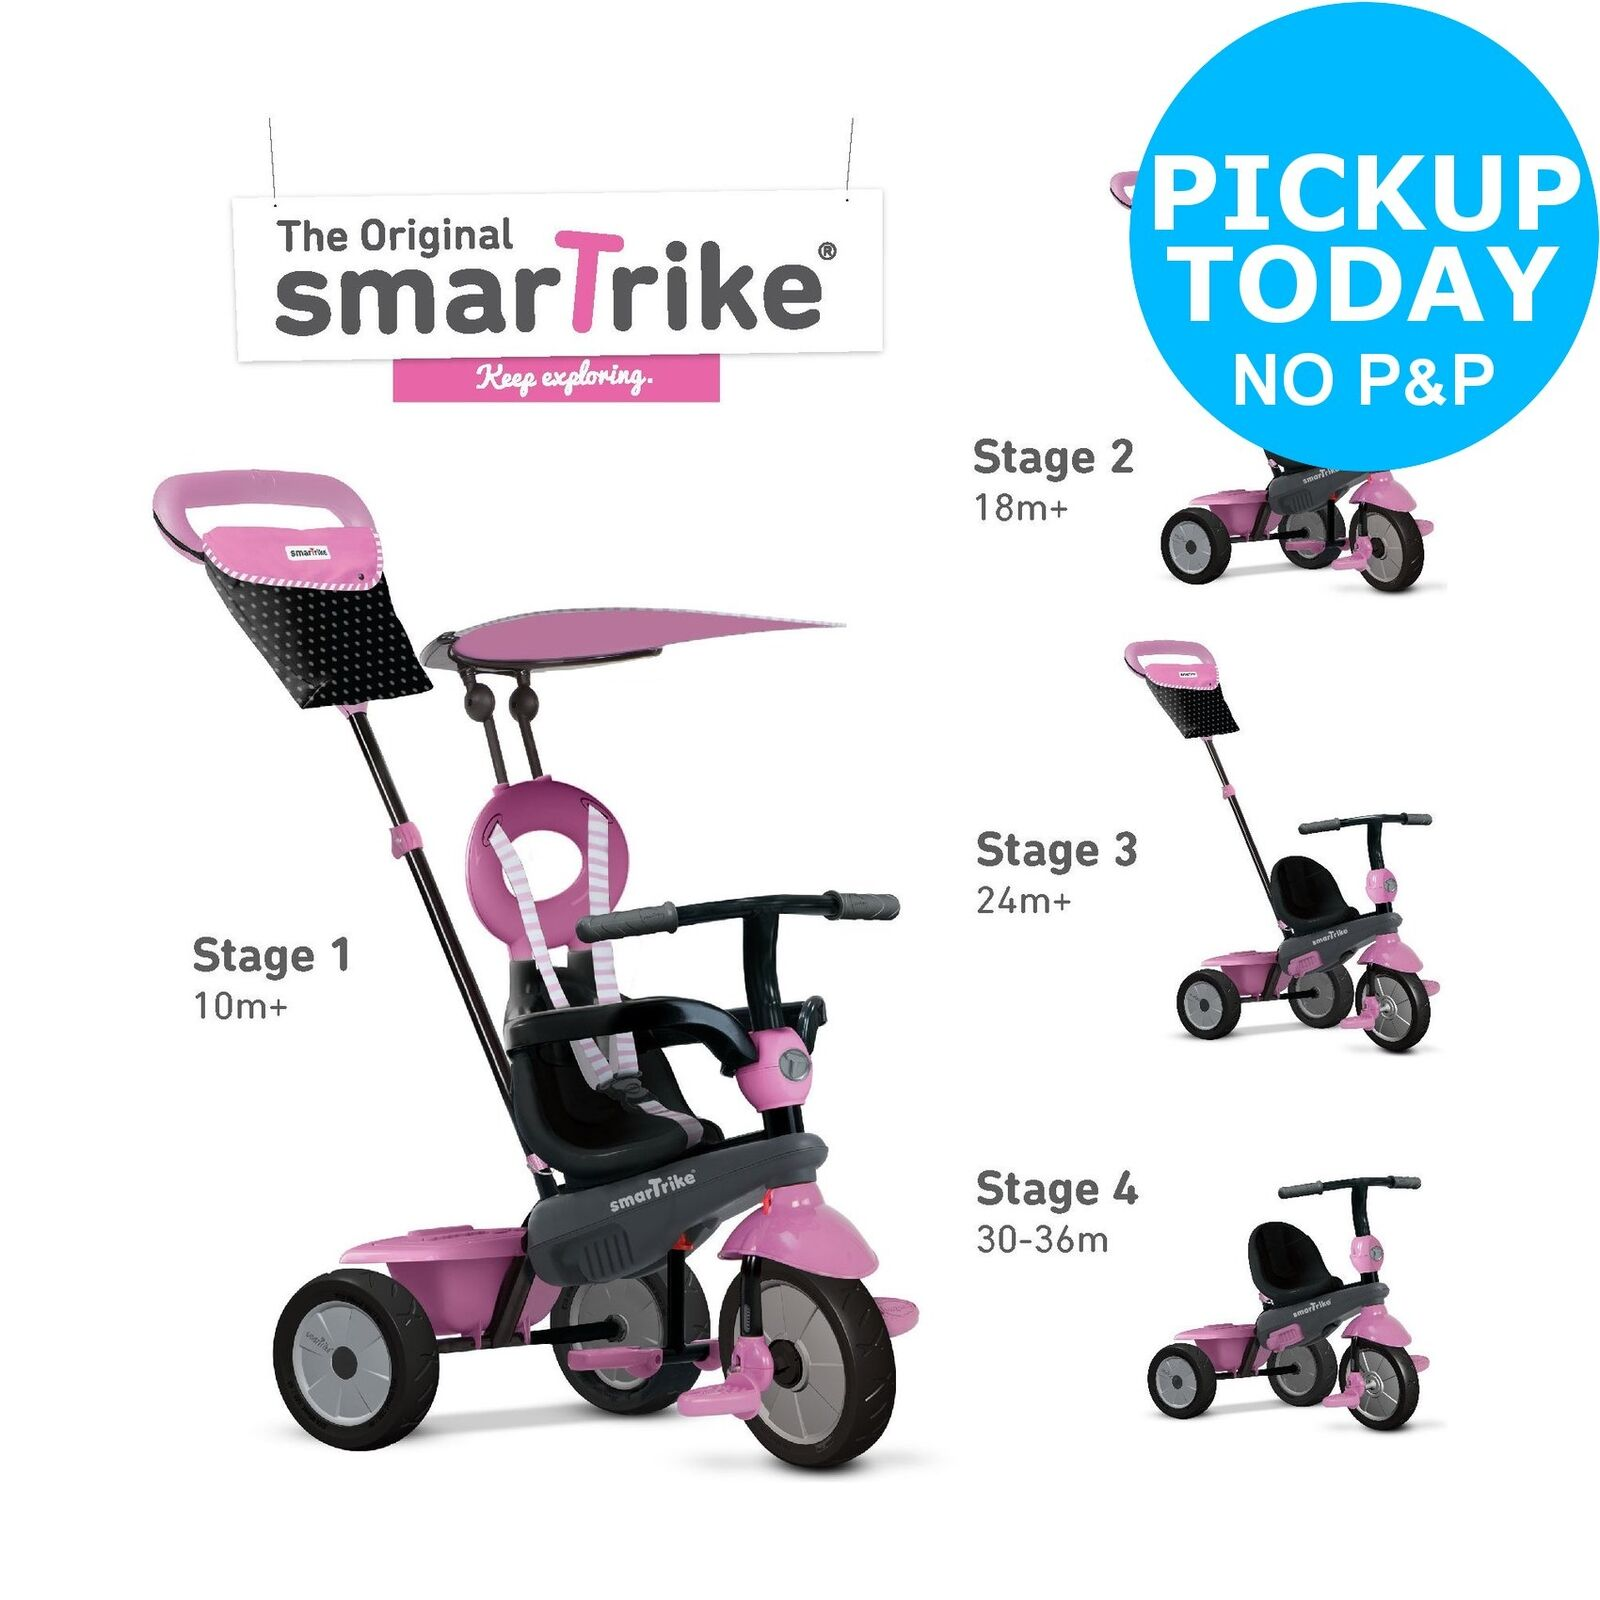 SmarTrike 4-in-1 Vanilla Tricycle - Pink.